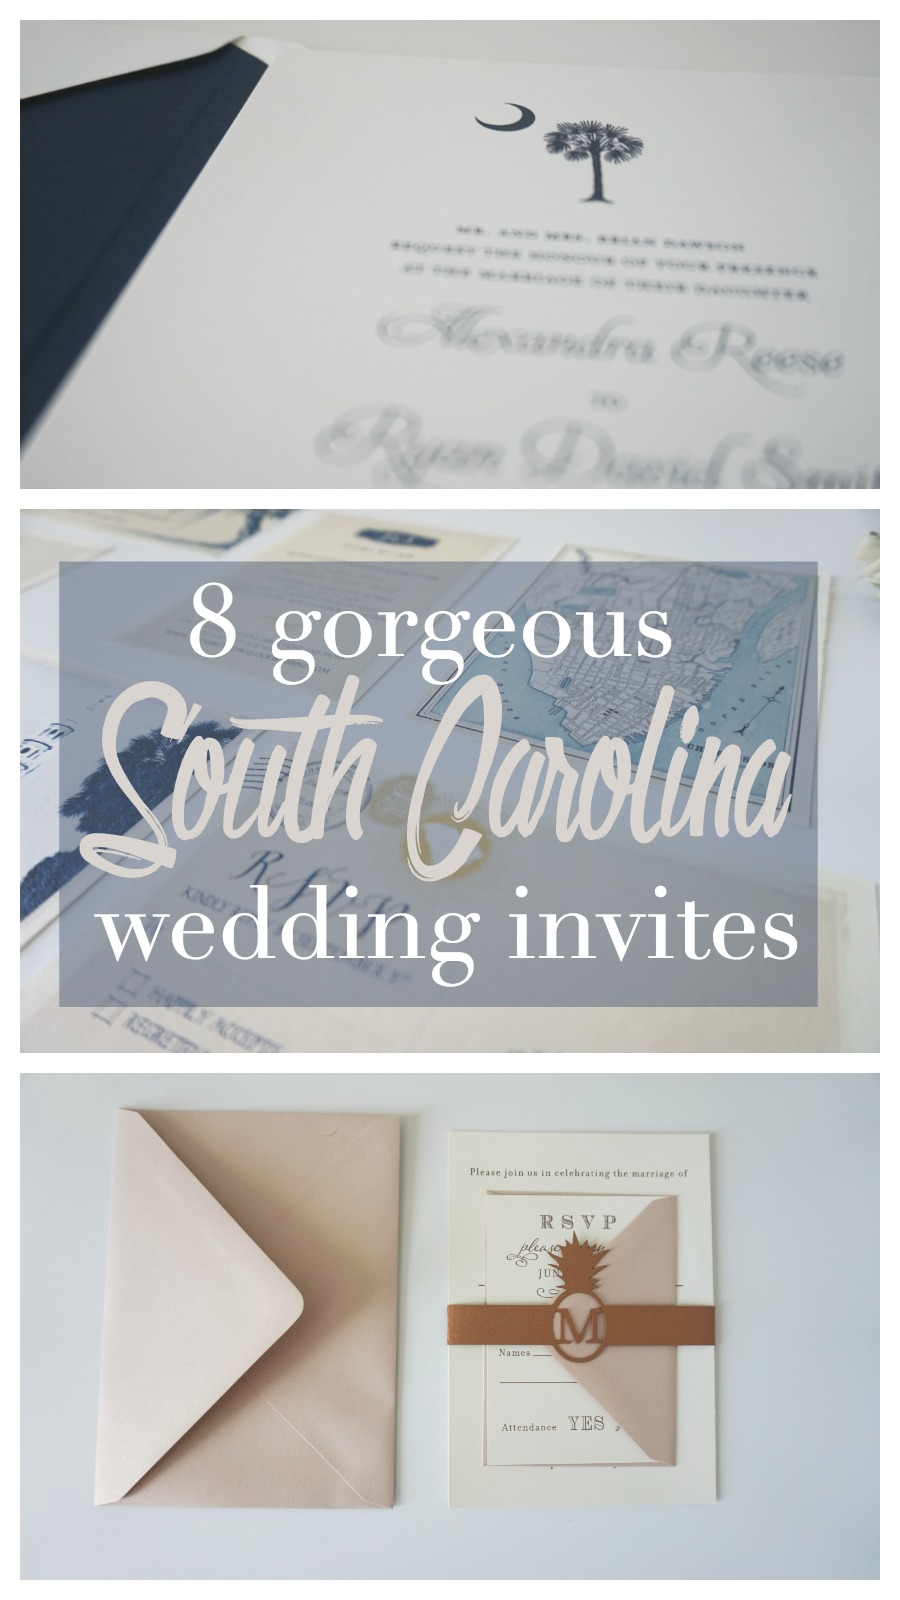 8 Gorgeous South Carolina Wedding Invitations | Palmetto State Weddings